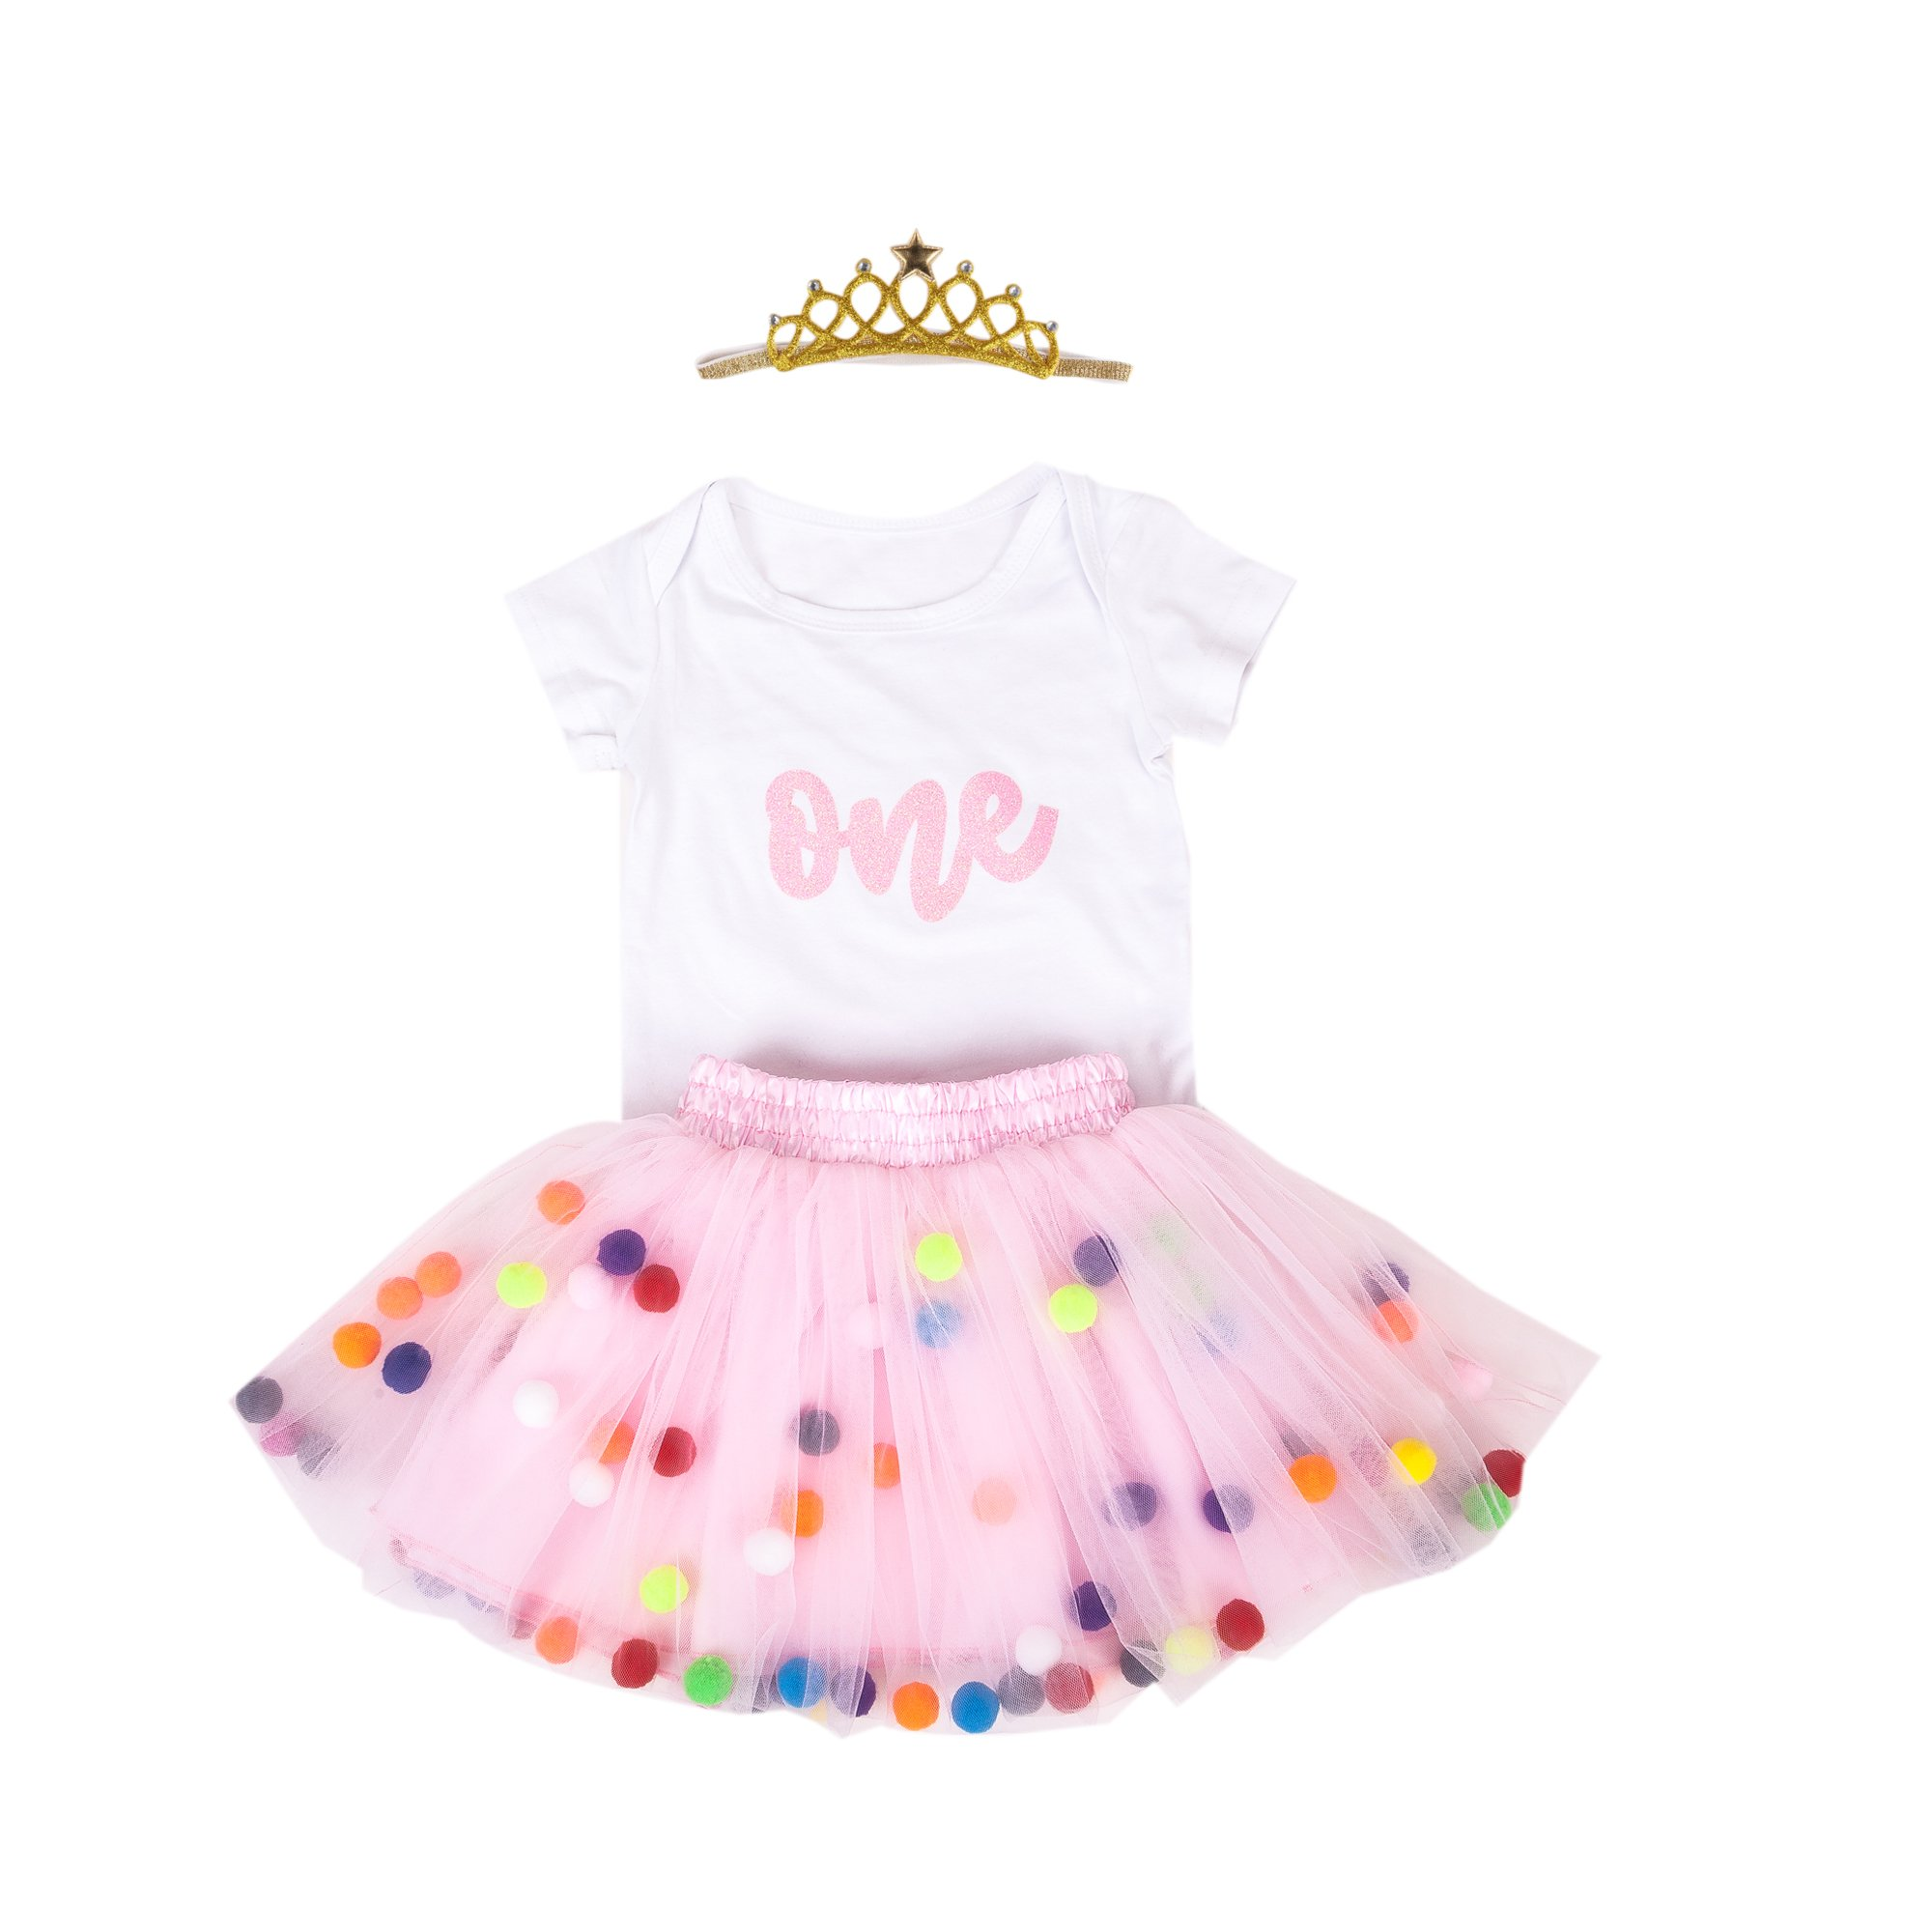 Baby Girls 1st Birthday Outfit Glitter One Romper Balls Skirt Crown Headband (Pink01, 12-18Months)